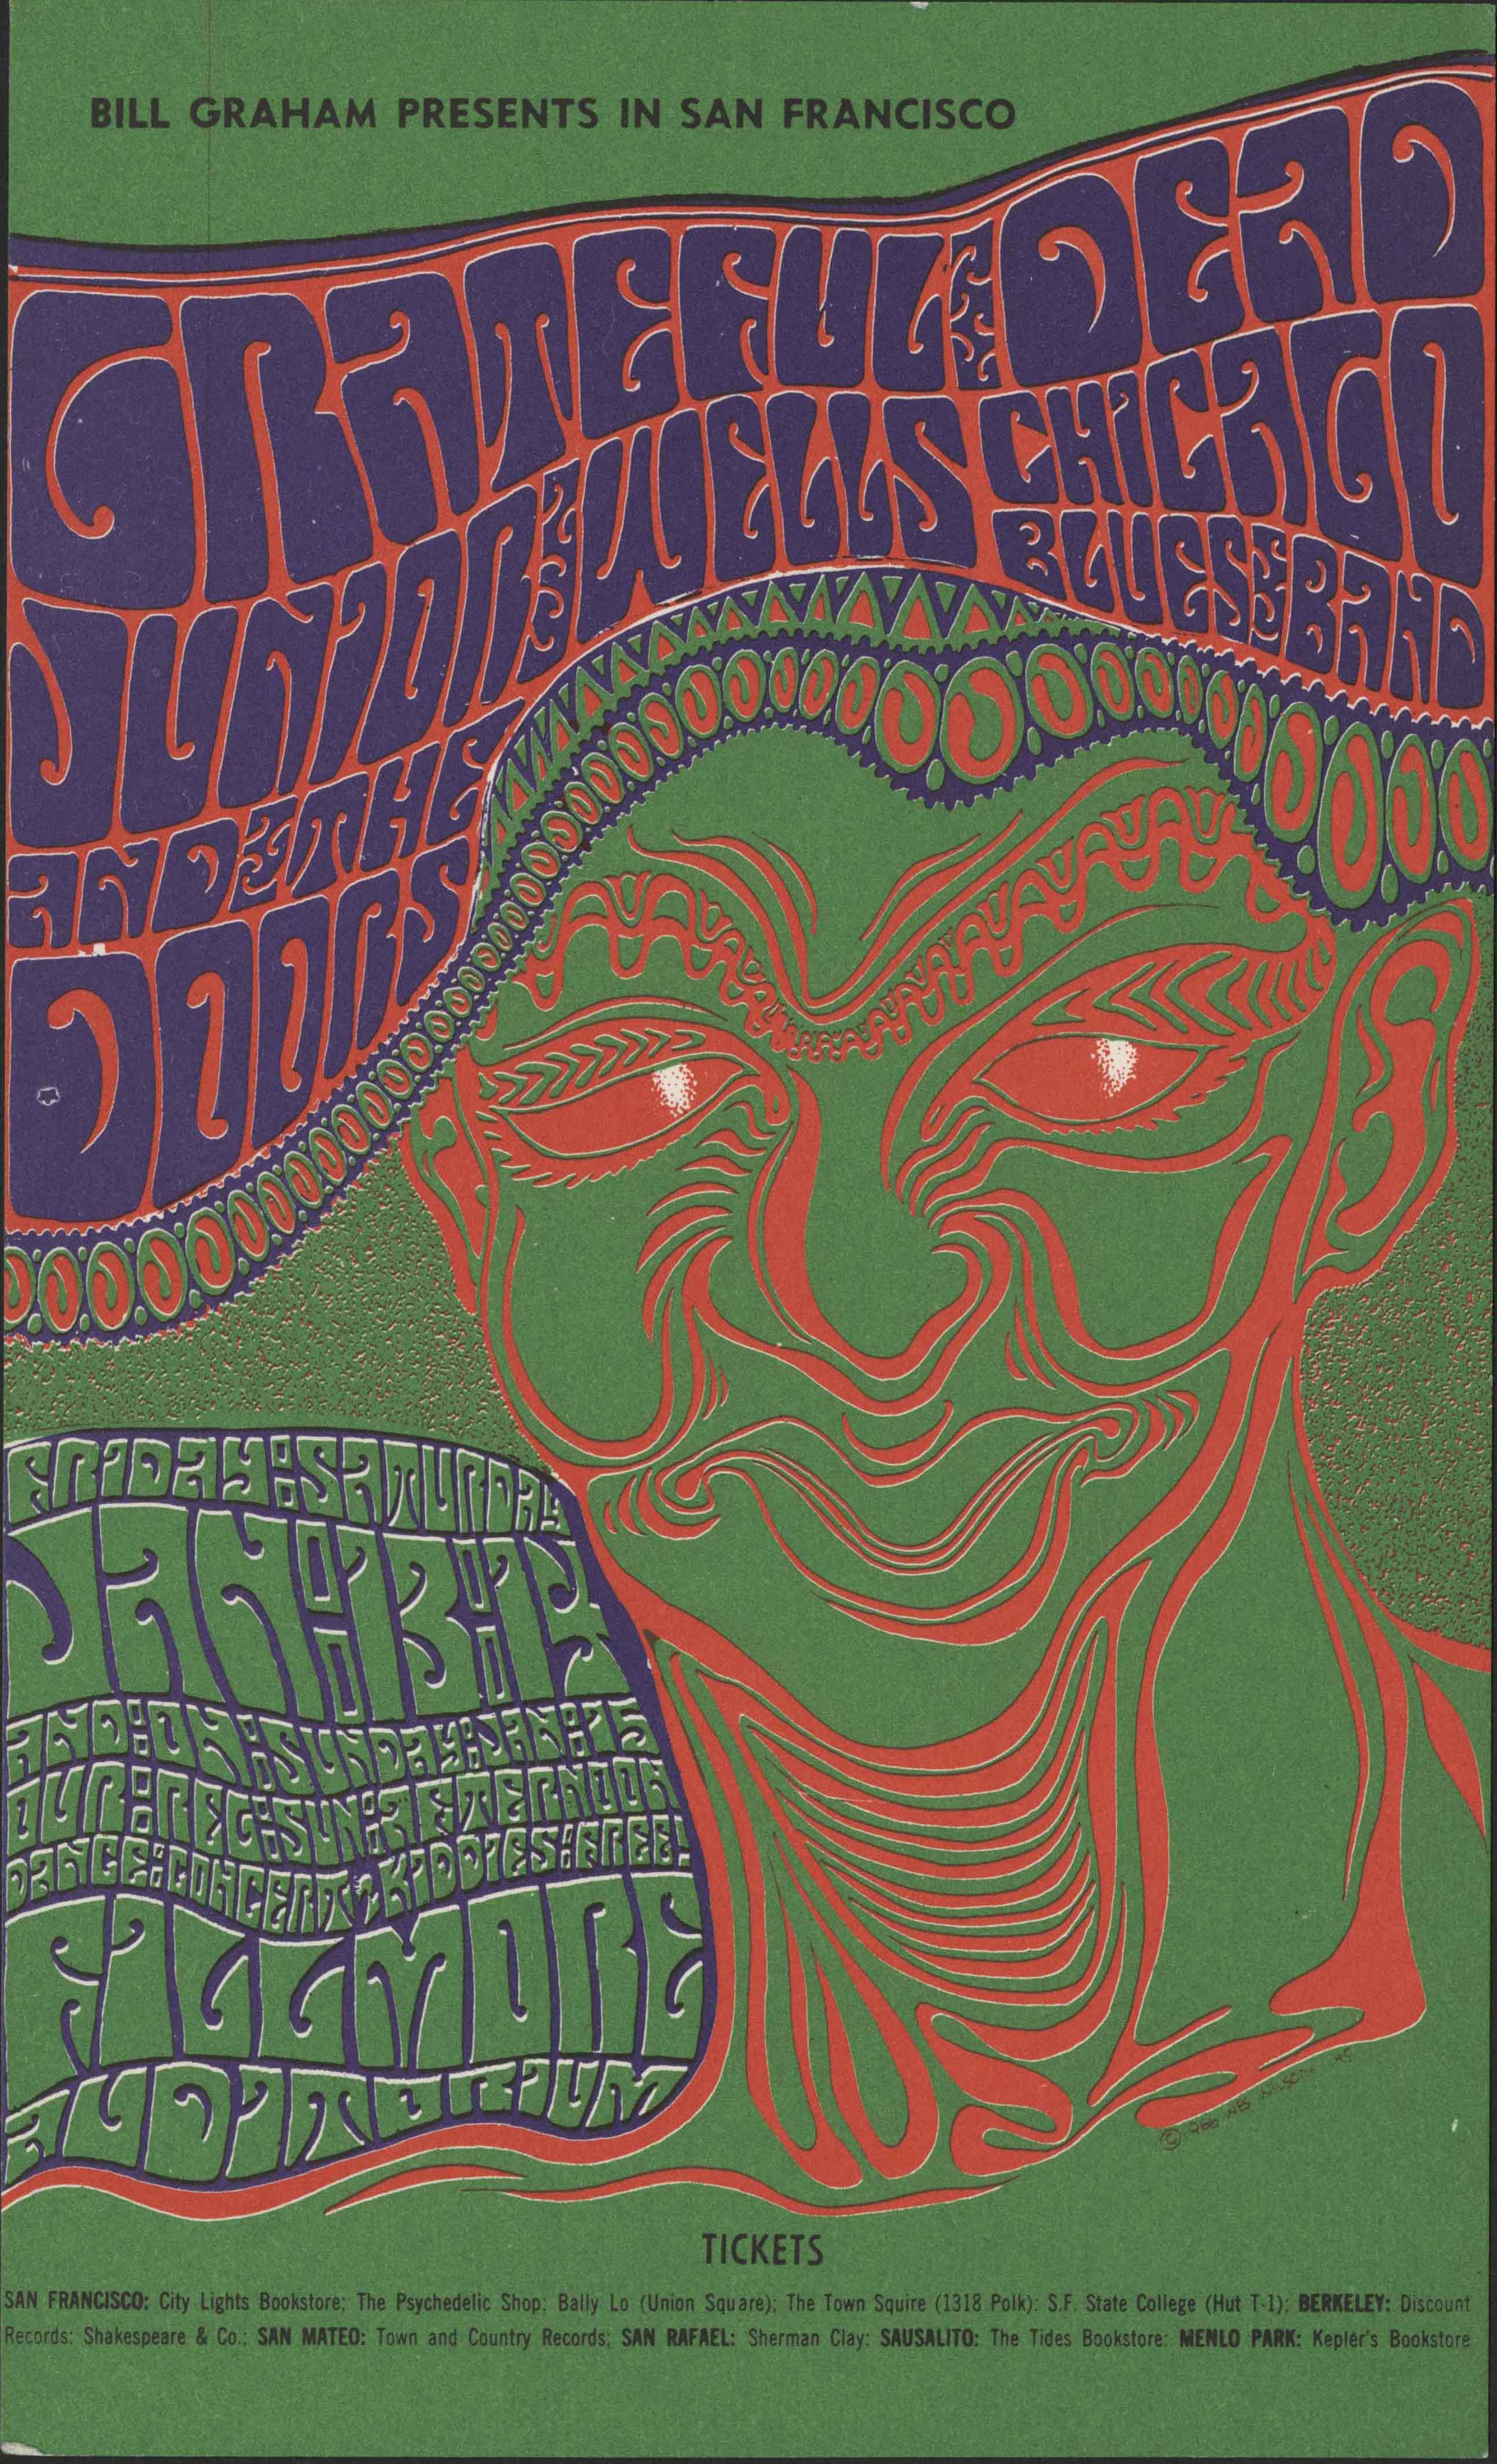 Grateful Dead concert flyer, Bill Graham, Fillmore, San Francisco